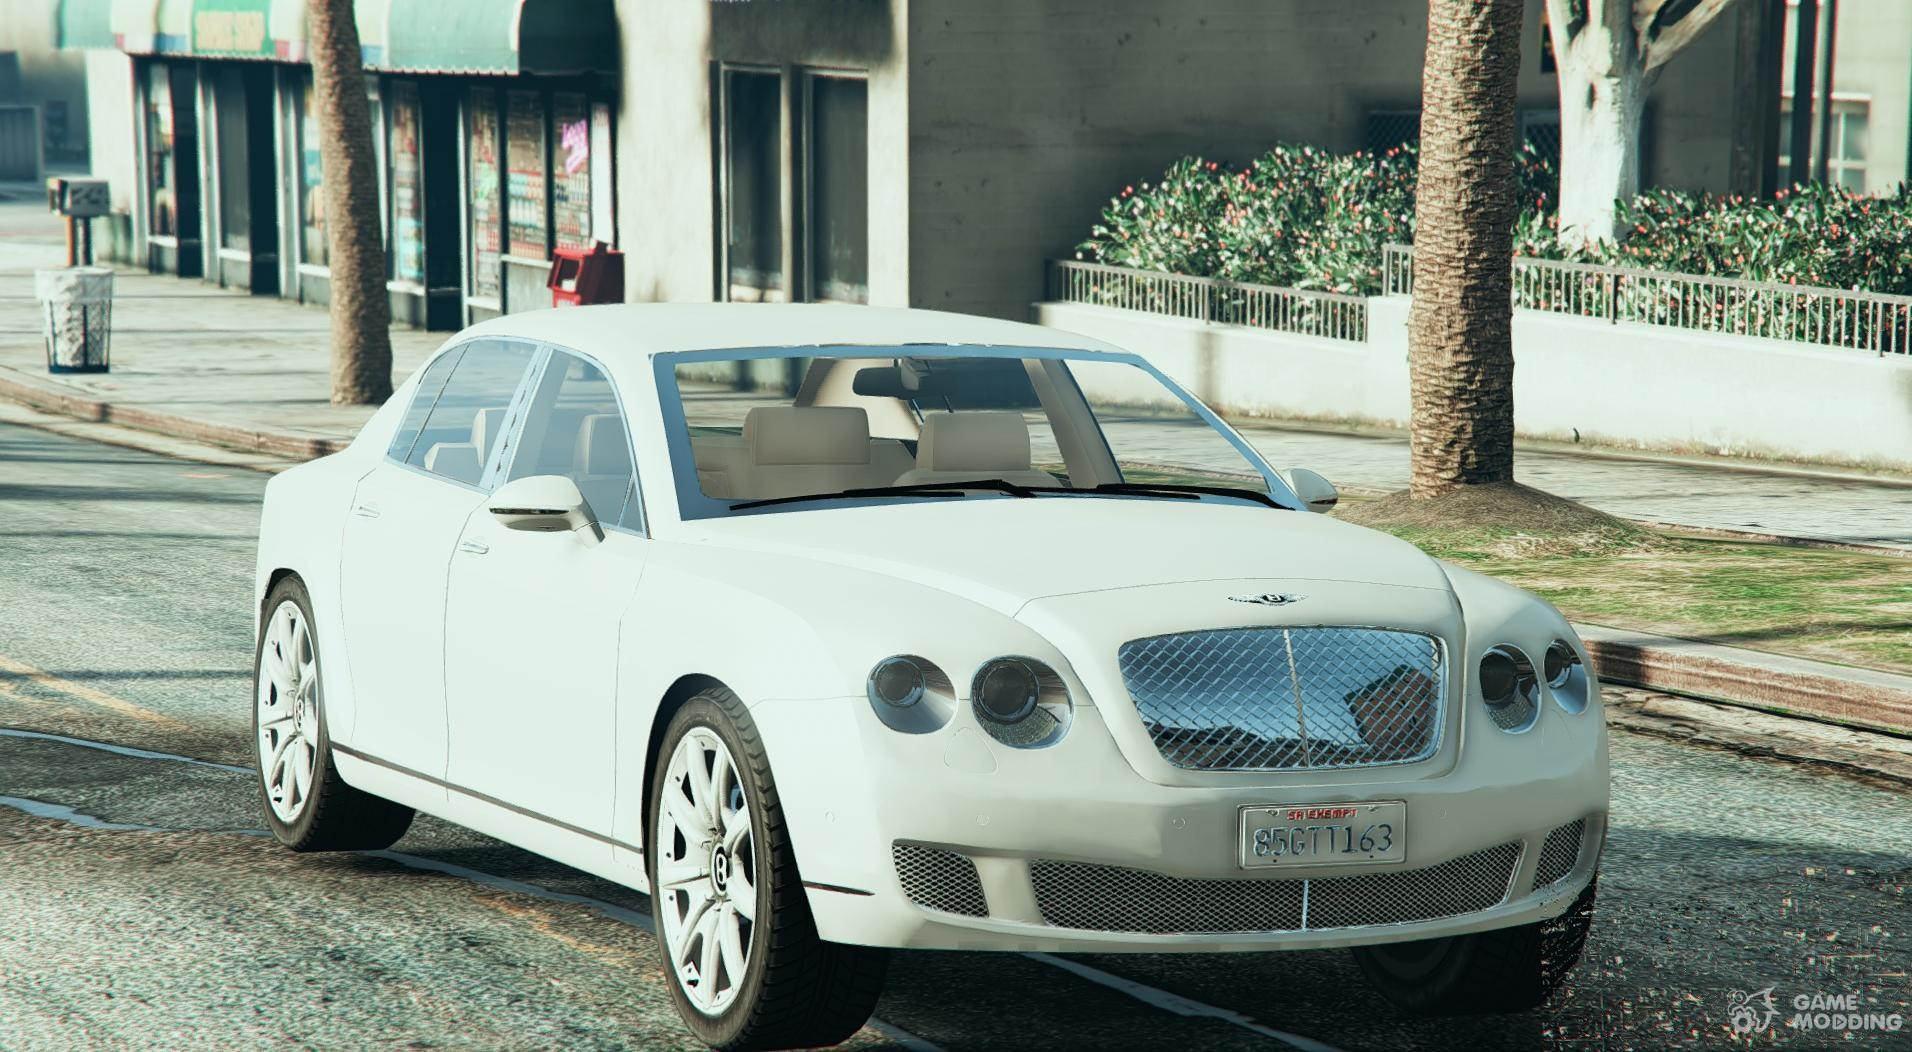 Bentley continental flying spur for gta 5 2010 bentley continental flying spur for gta 5 vanachro Choice Image